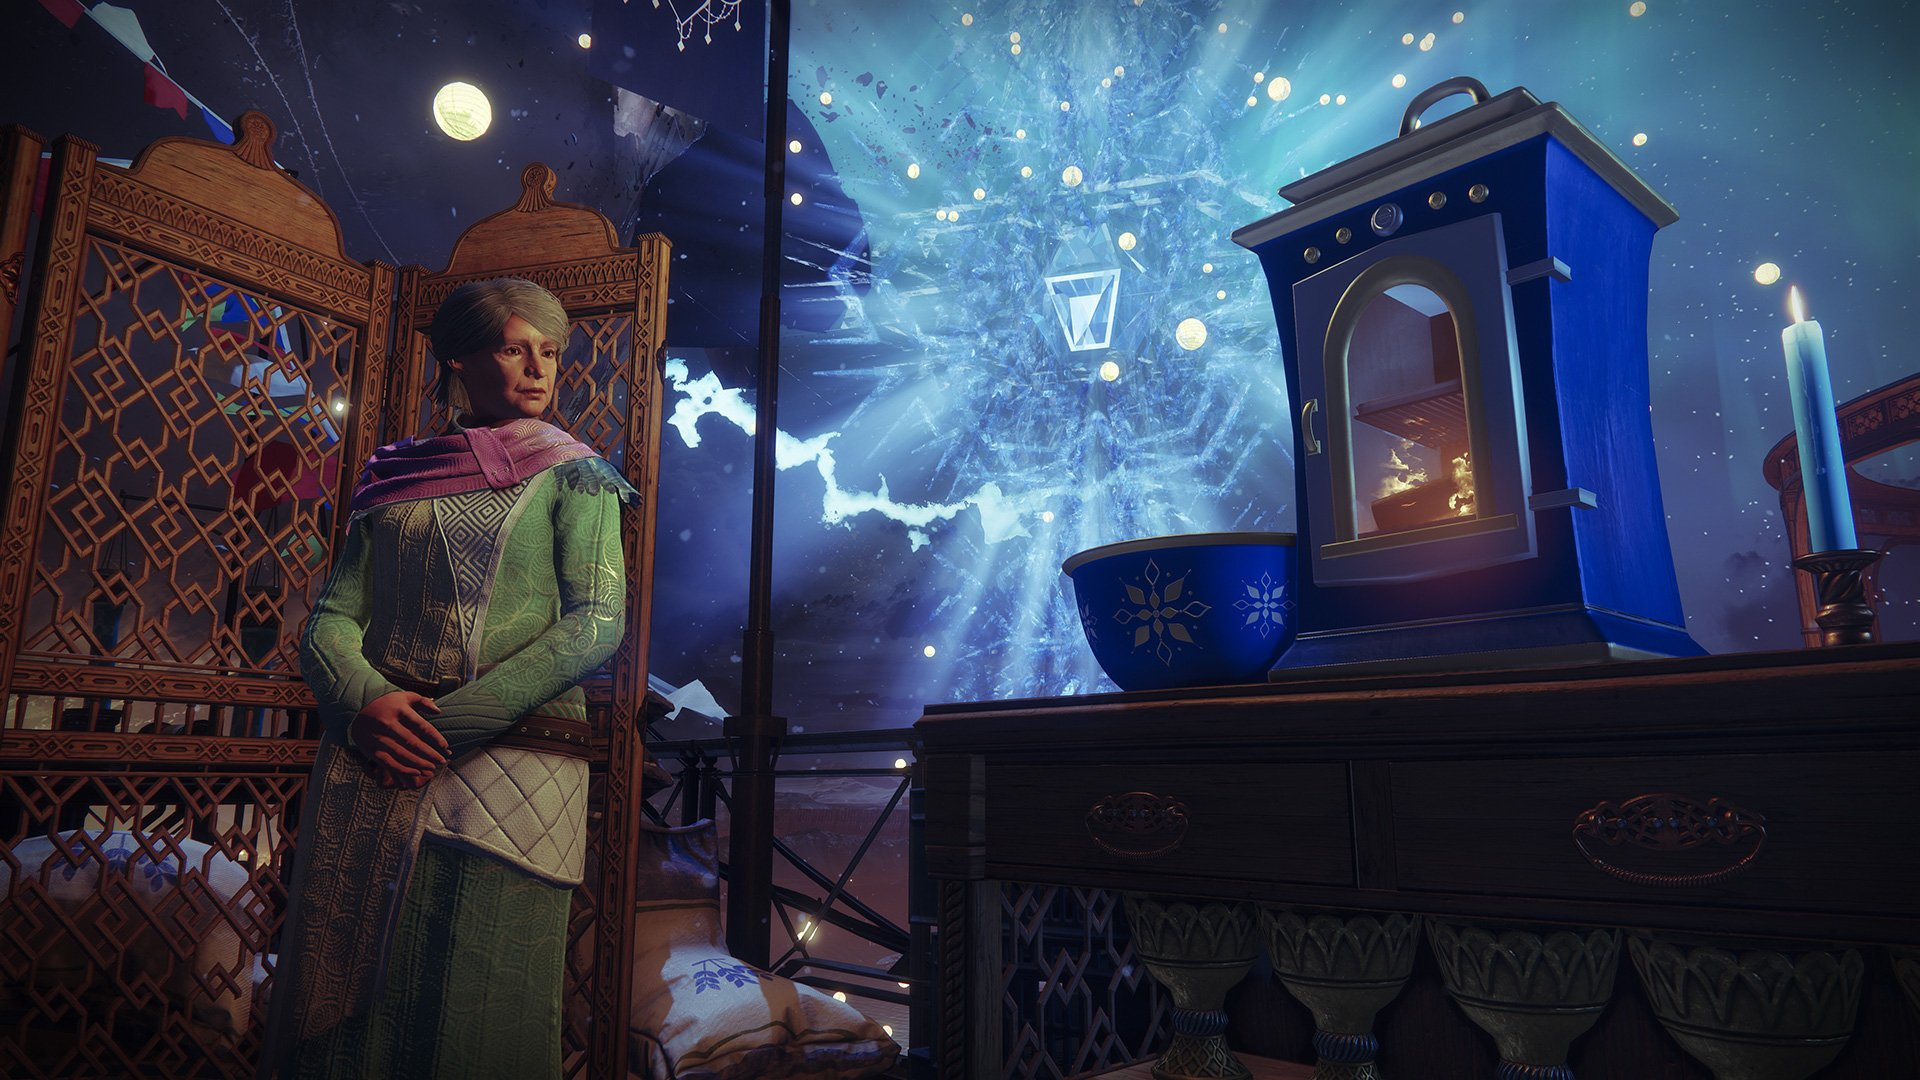 dawning cookie recipes 2020